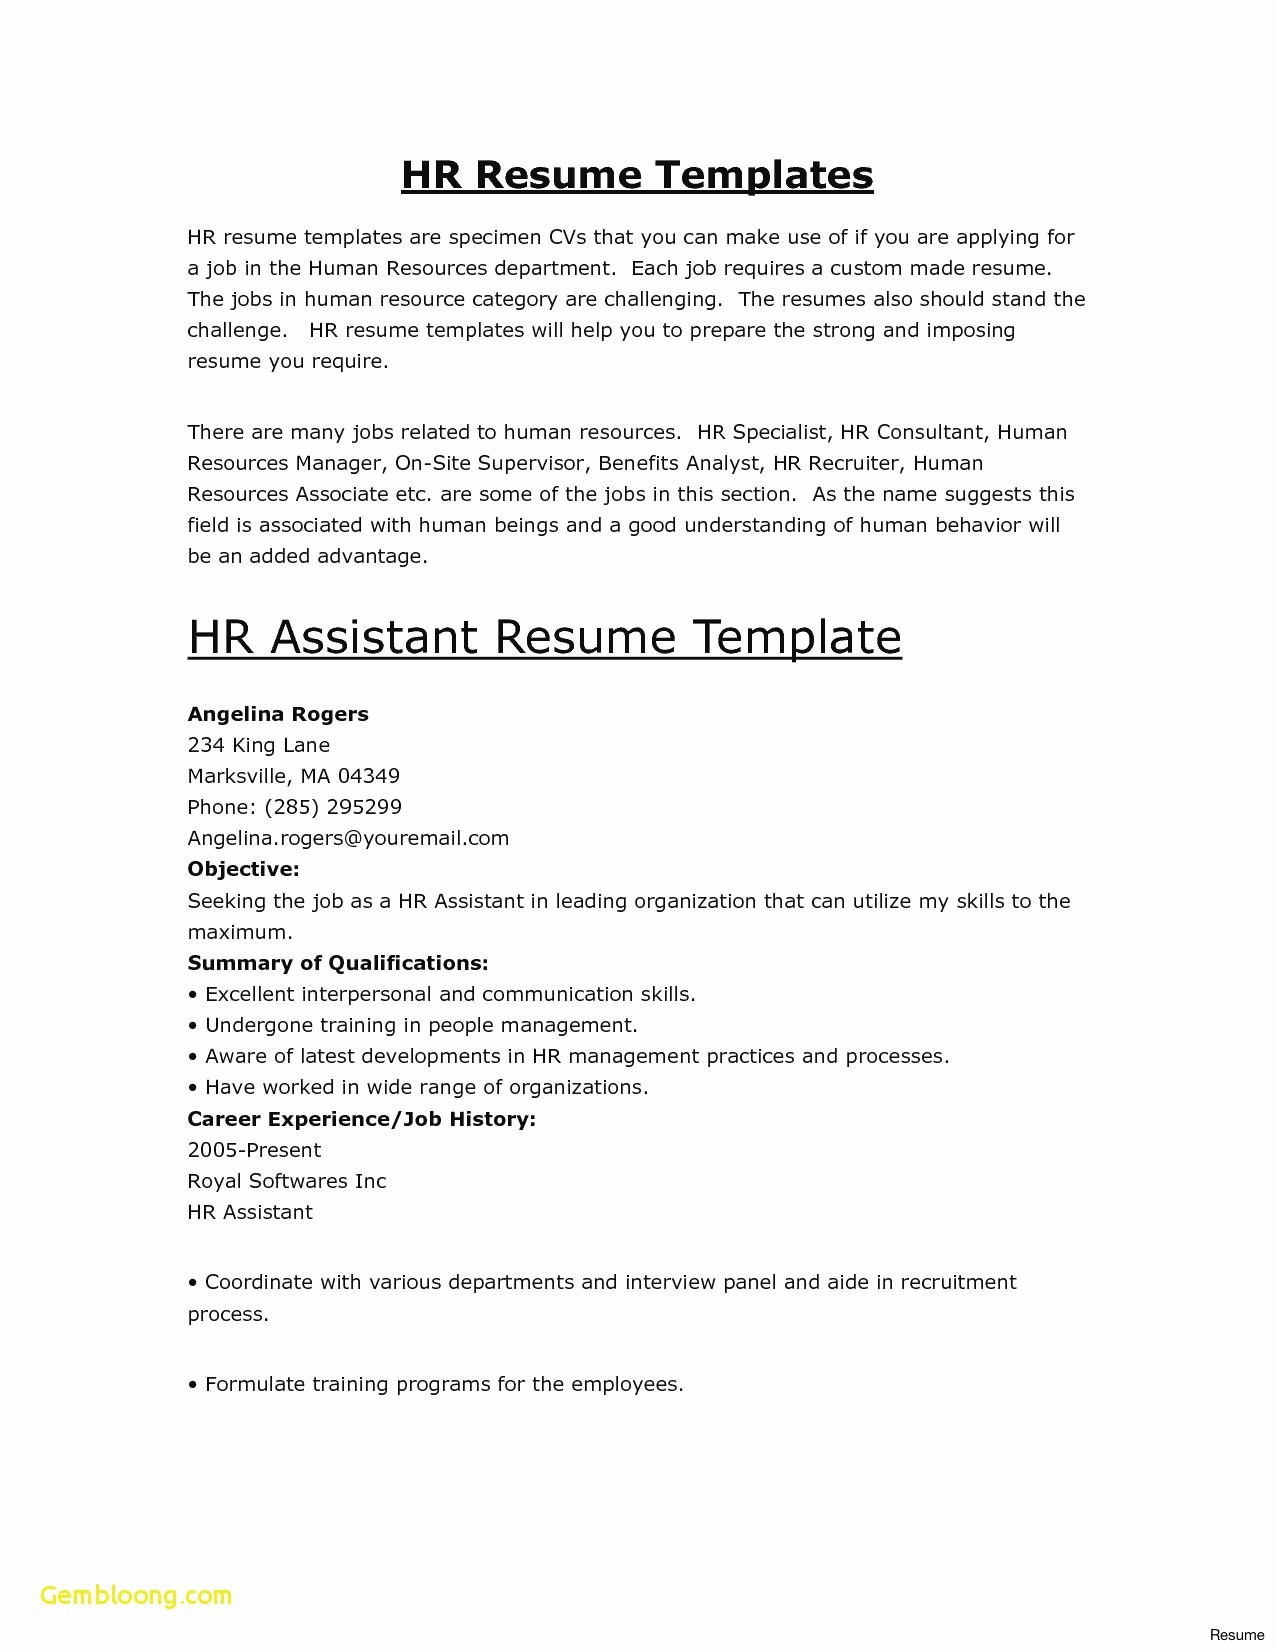 Beginners Resume Template - How to Make An Acting Resume Awesome Beginner Actor Resume Awesome